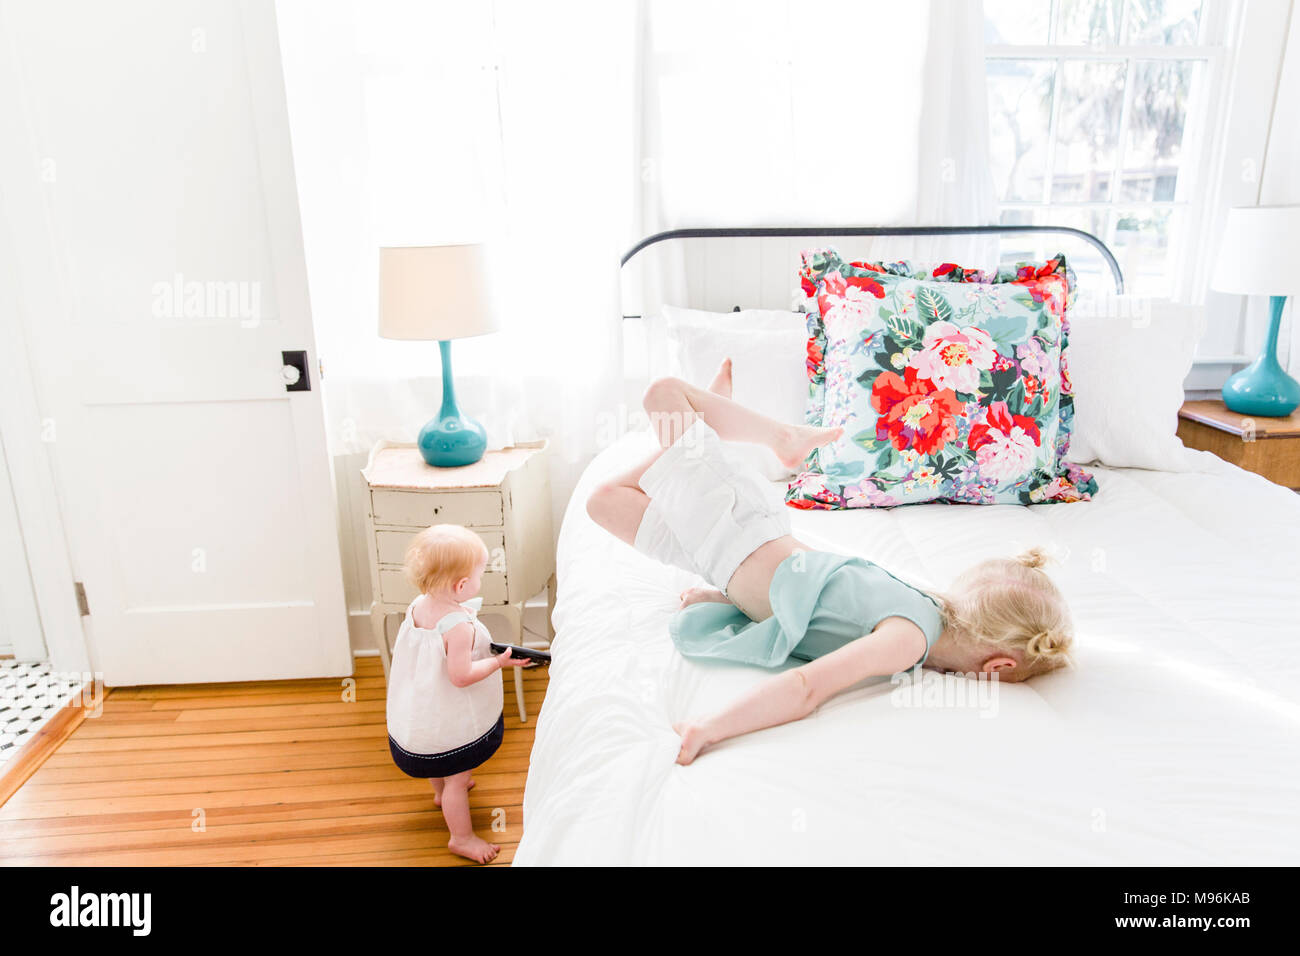 Girl laying on bed with baby next to her - Stock Image